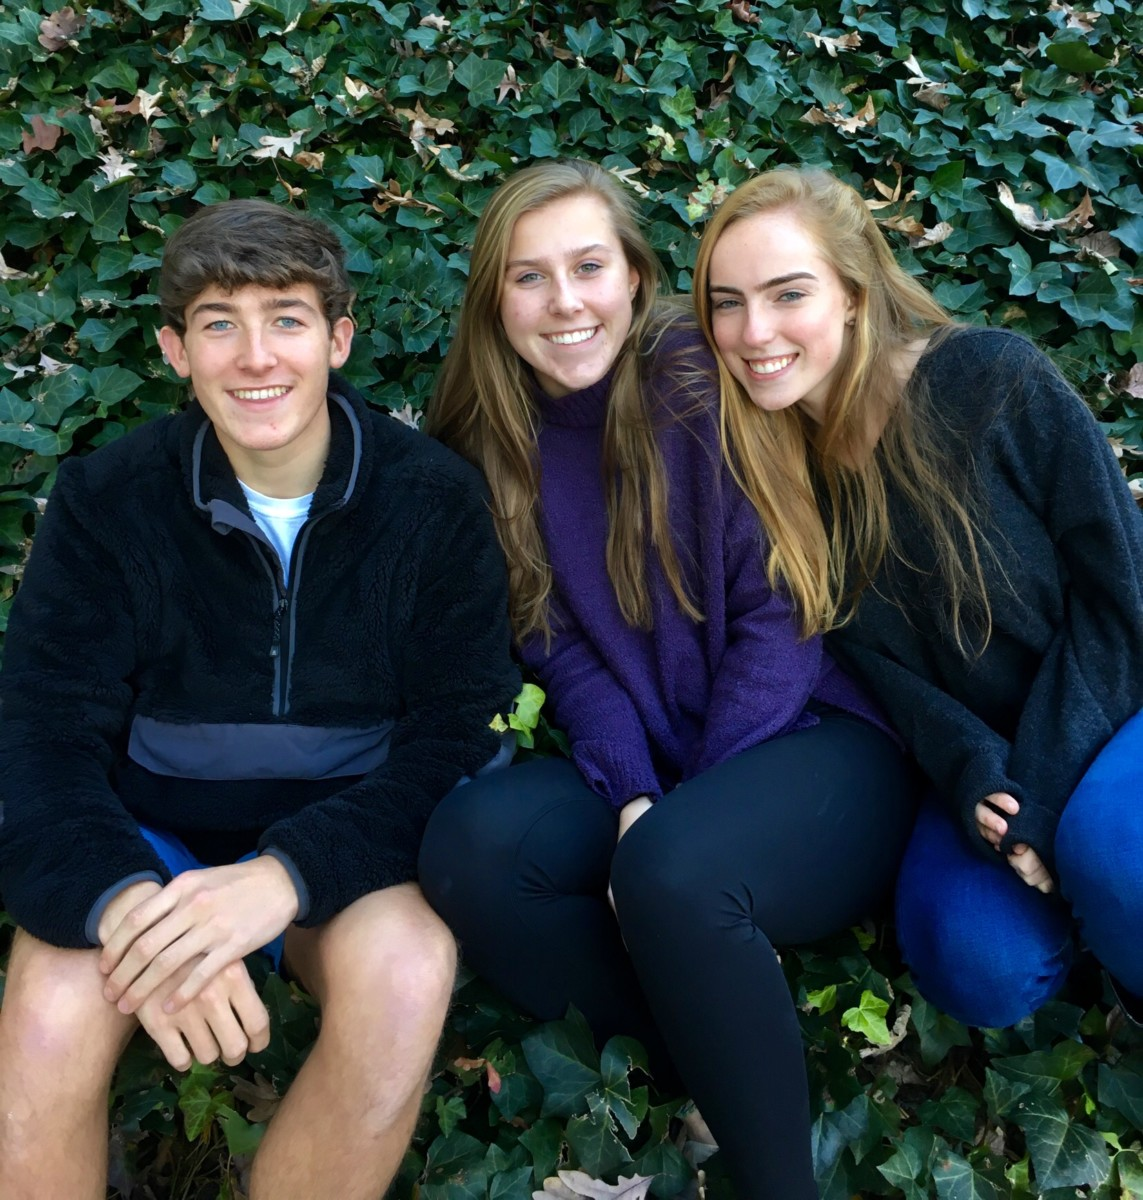 Rooted in Nature: Juniors Ethan Staats, Lily Mason, and Molly Neel have found their true calling among nature, whether it's working outdoorsy jobs, becoming involved in nature organizations, or even starting their own outdoor clubs.